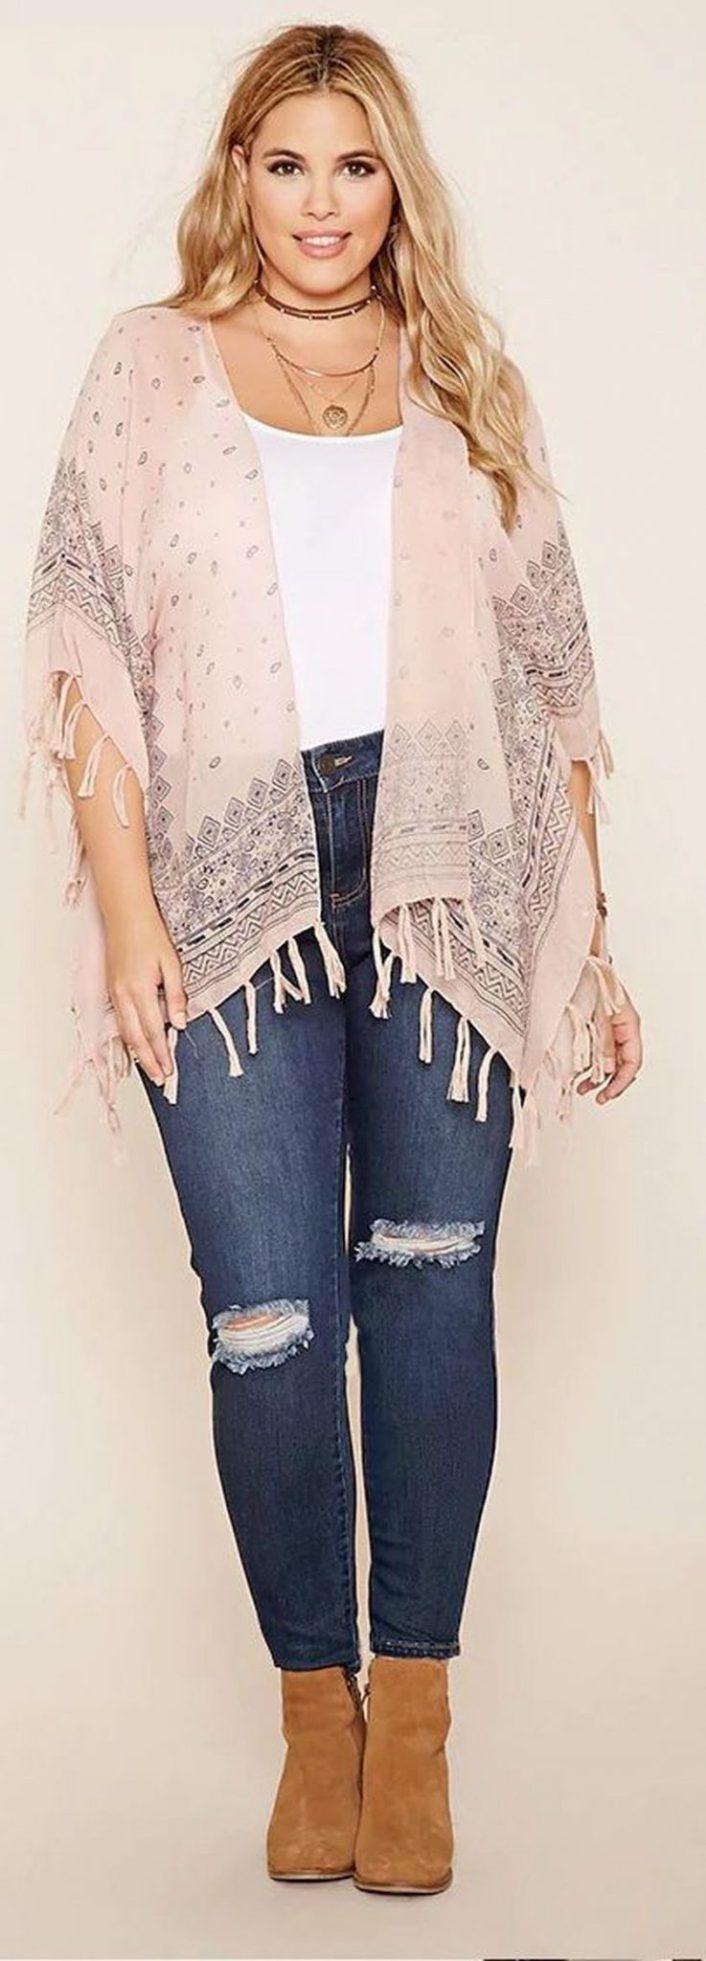 25 Best Plus Size Images On Pinterest Fashion Ideas Modeling And Mooi Printing Premium Sweater Top Unicorn S 90 Charming Summer Casual Work Outfits For That Should You Copy